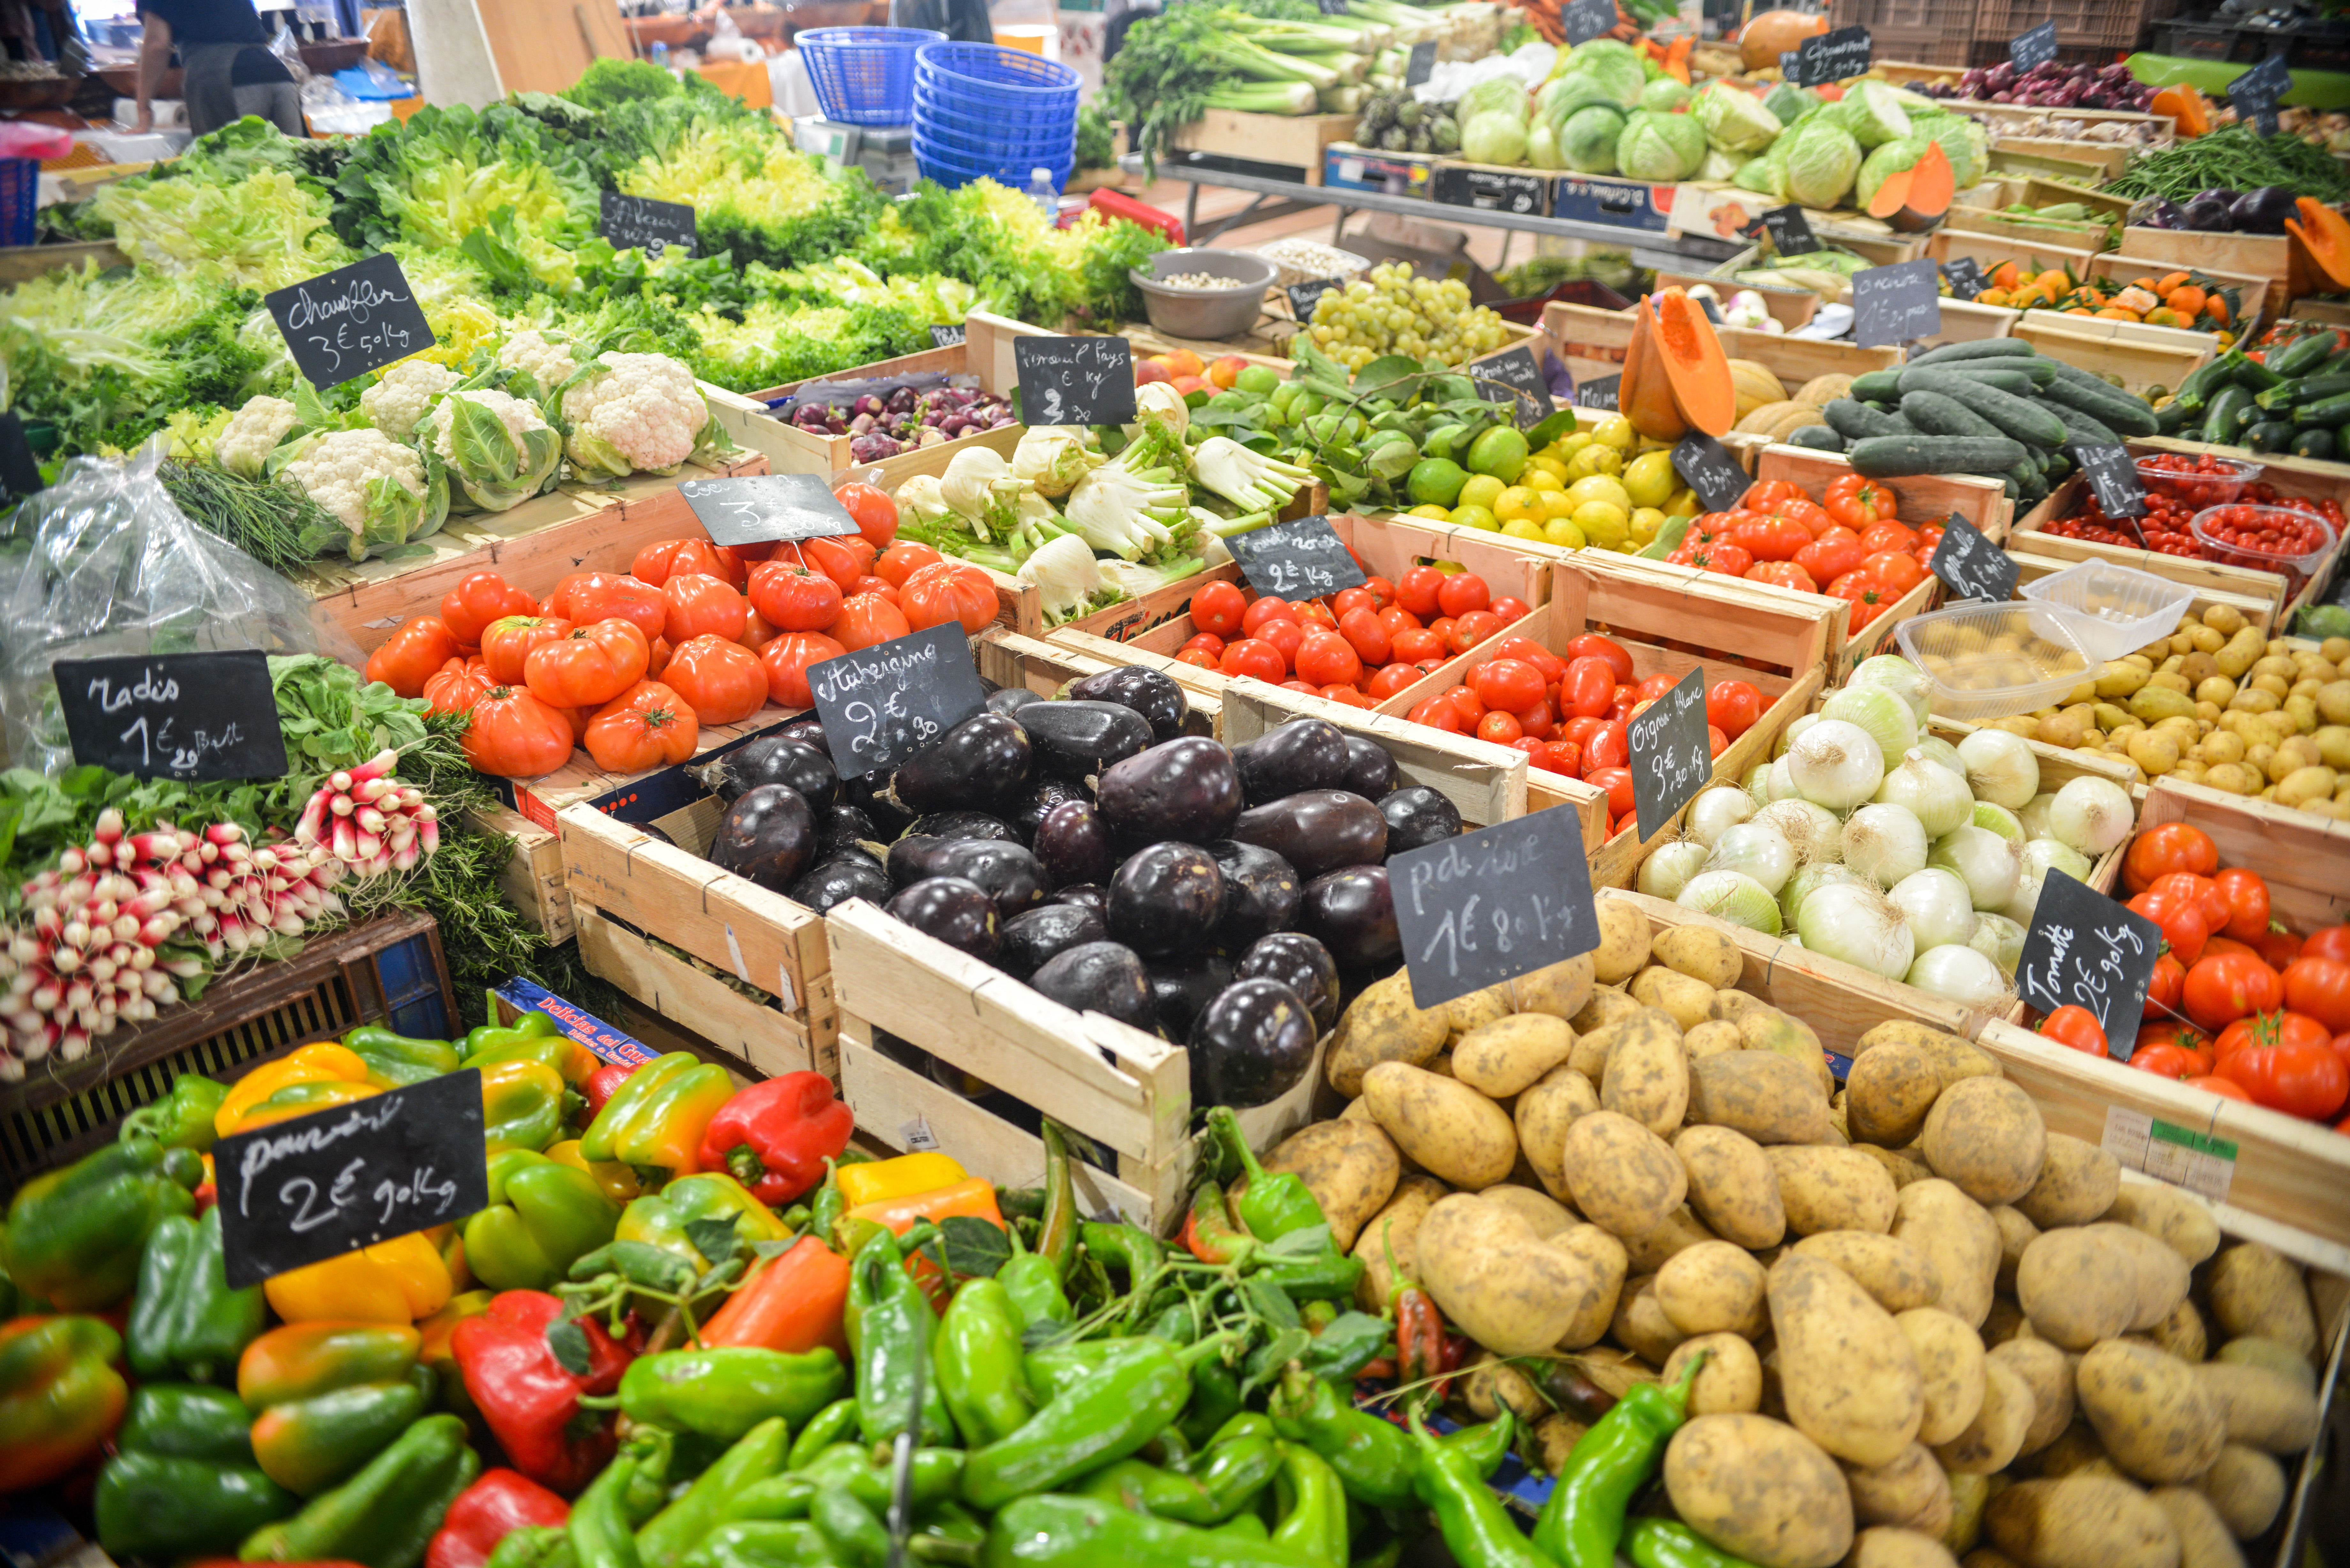 A selection of vegetables at a supermarket